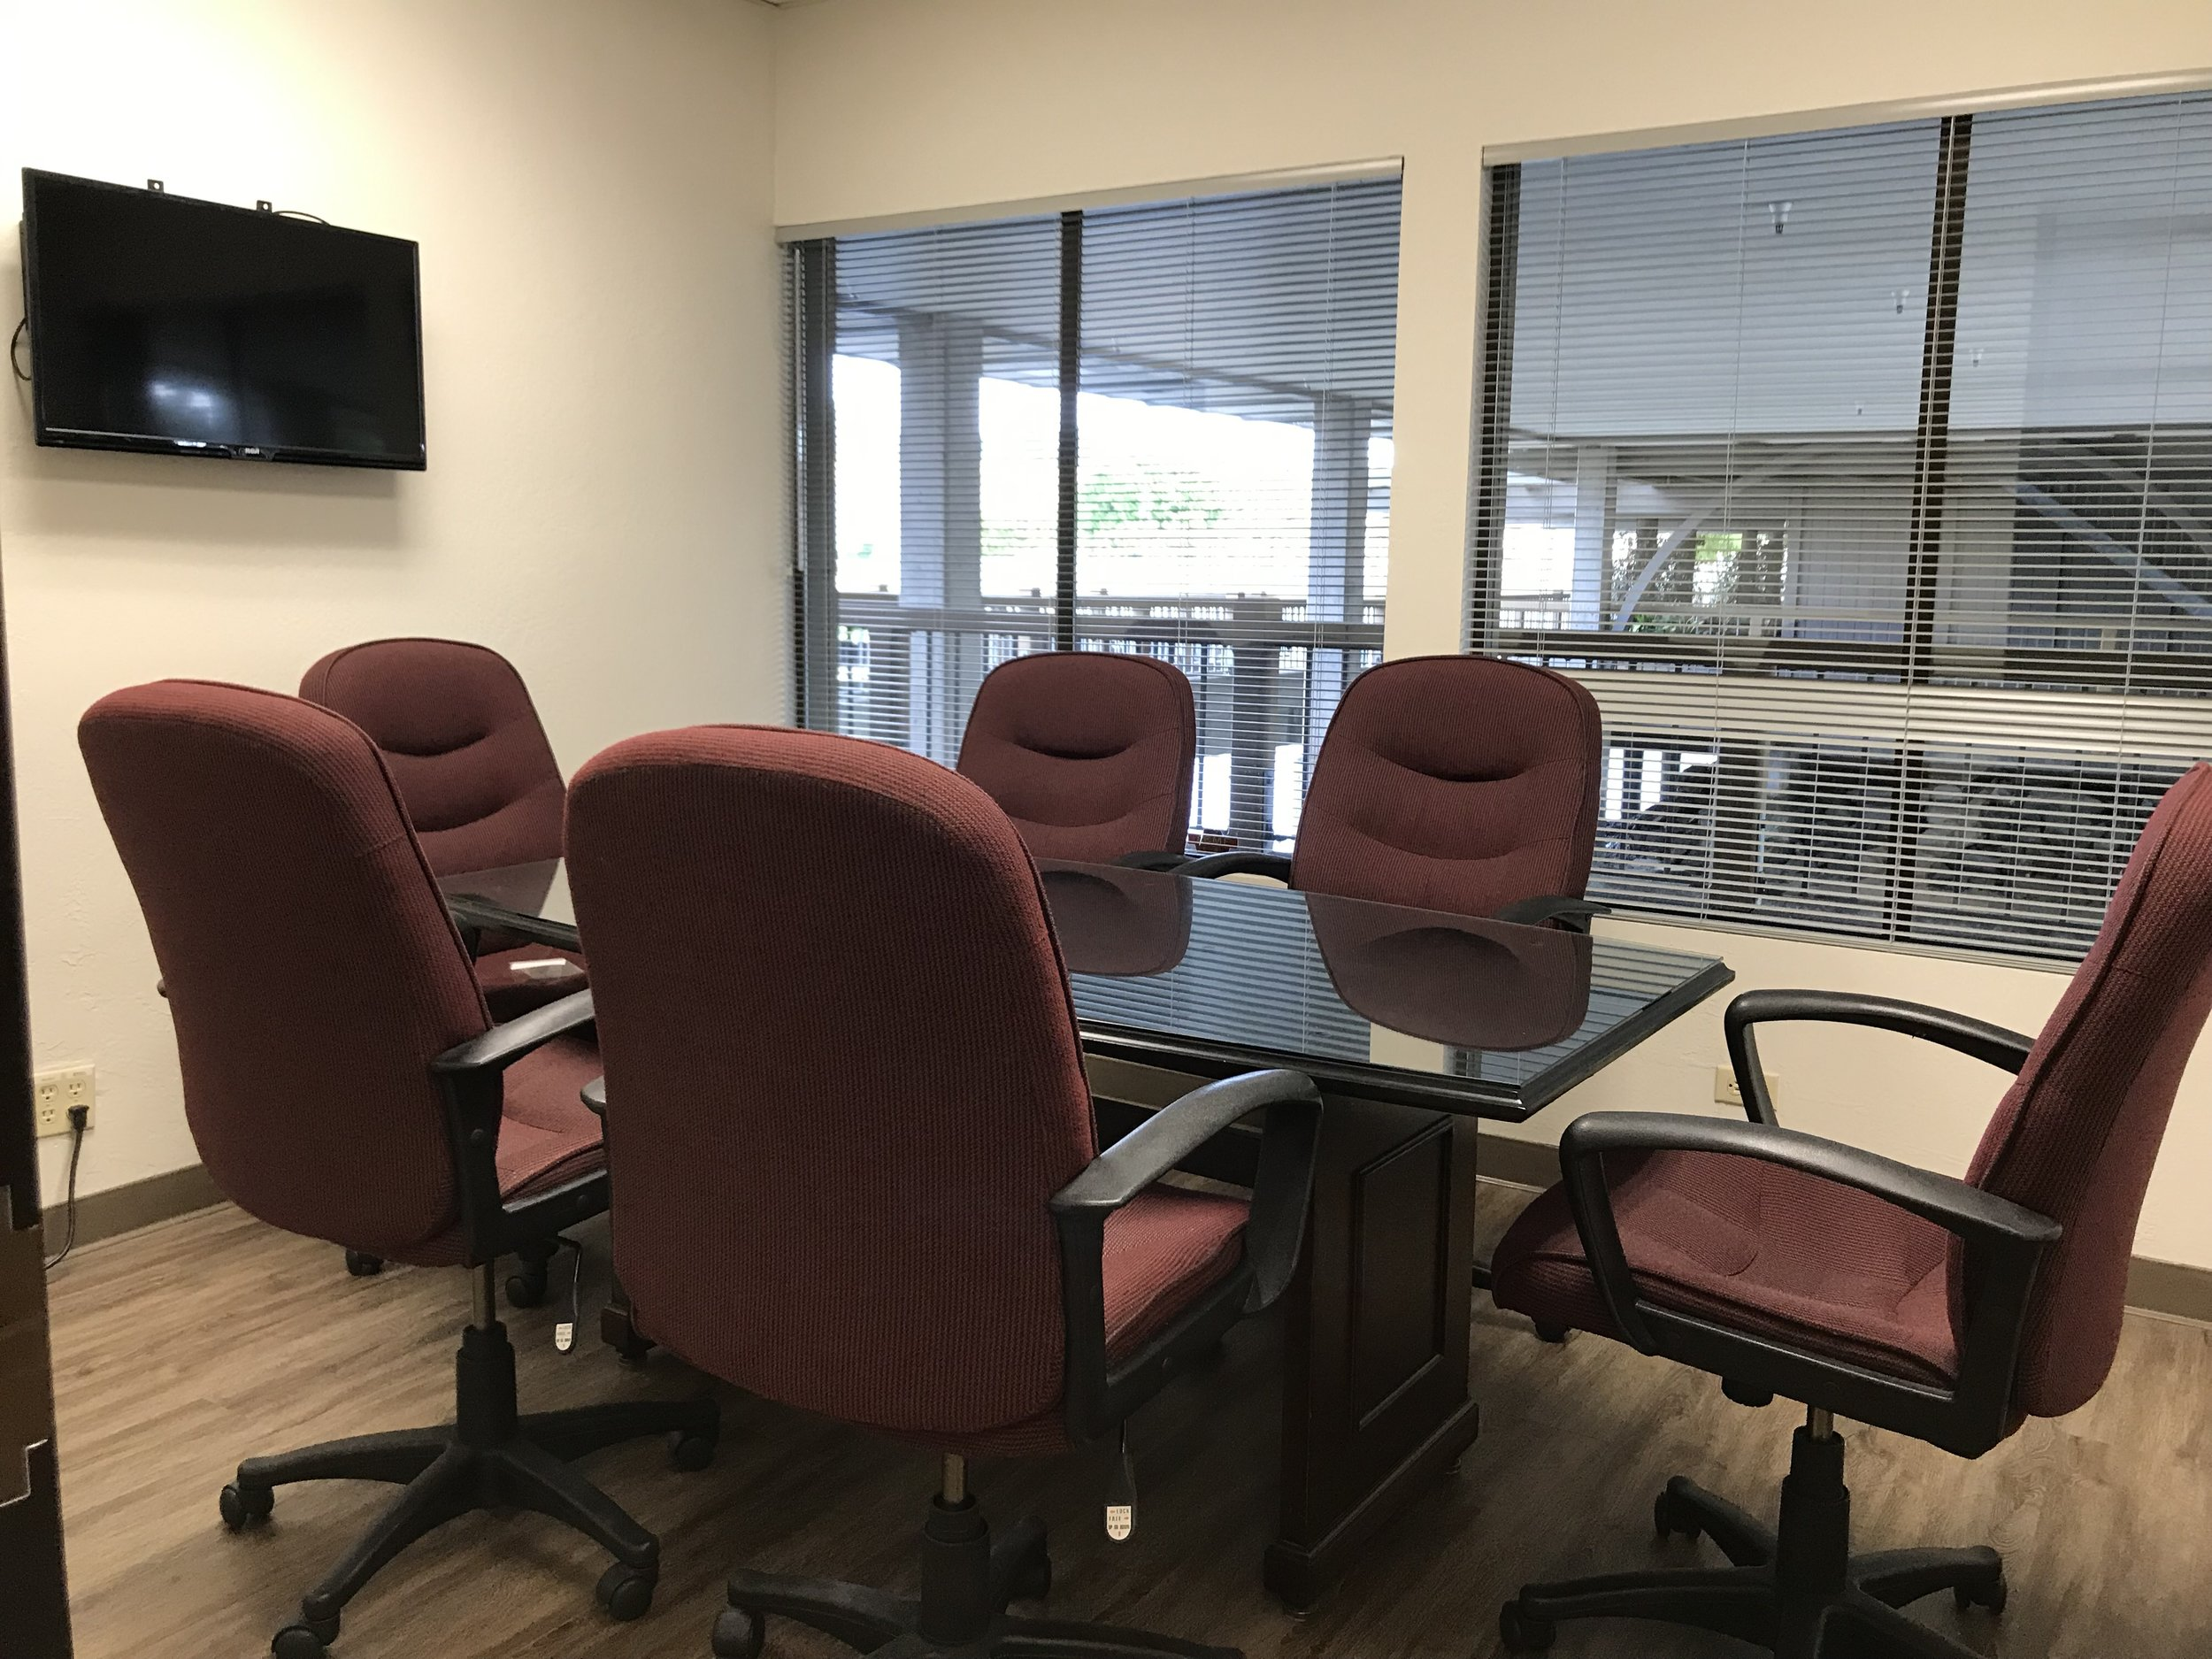 Conference Room 2 - $45/hr - Videoconferencing available.